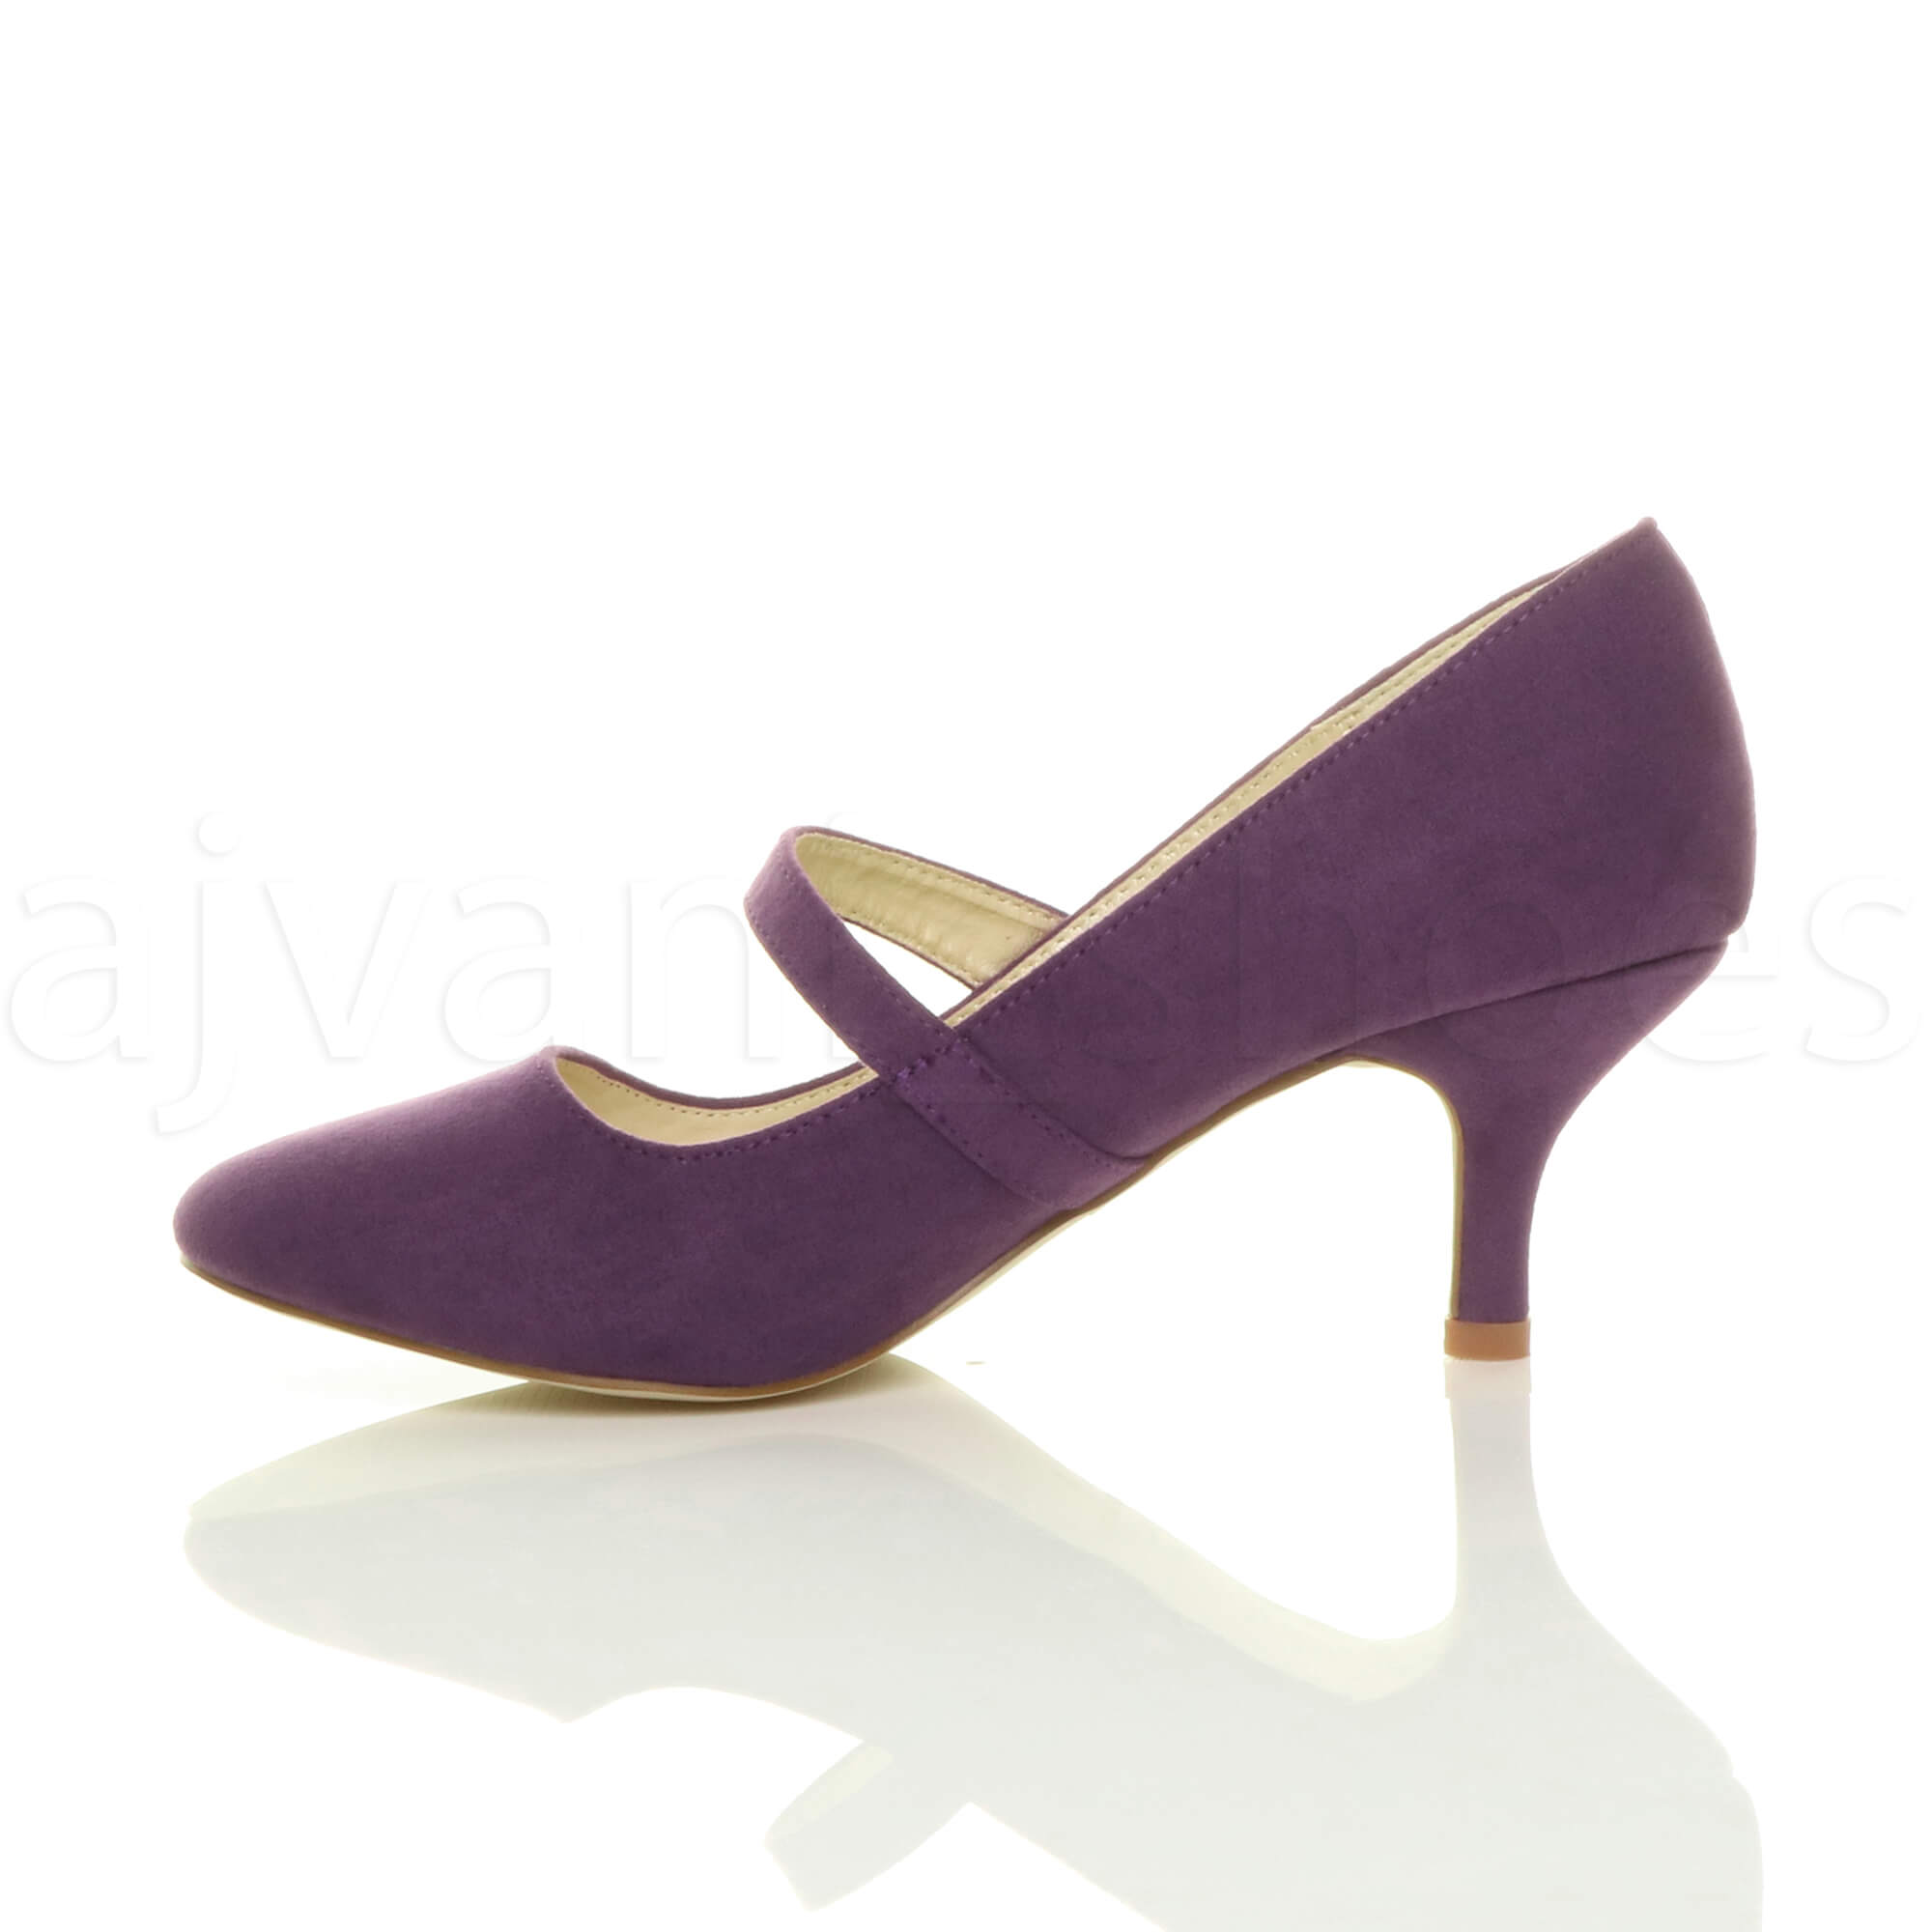 WOMENS-LADIES-LOW-MID-HEEL-MARY-JANE-STRAP-WORK-PARTY-COURT-SHOES-PUMPS-SIZE